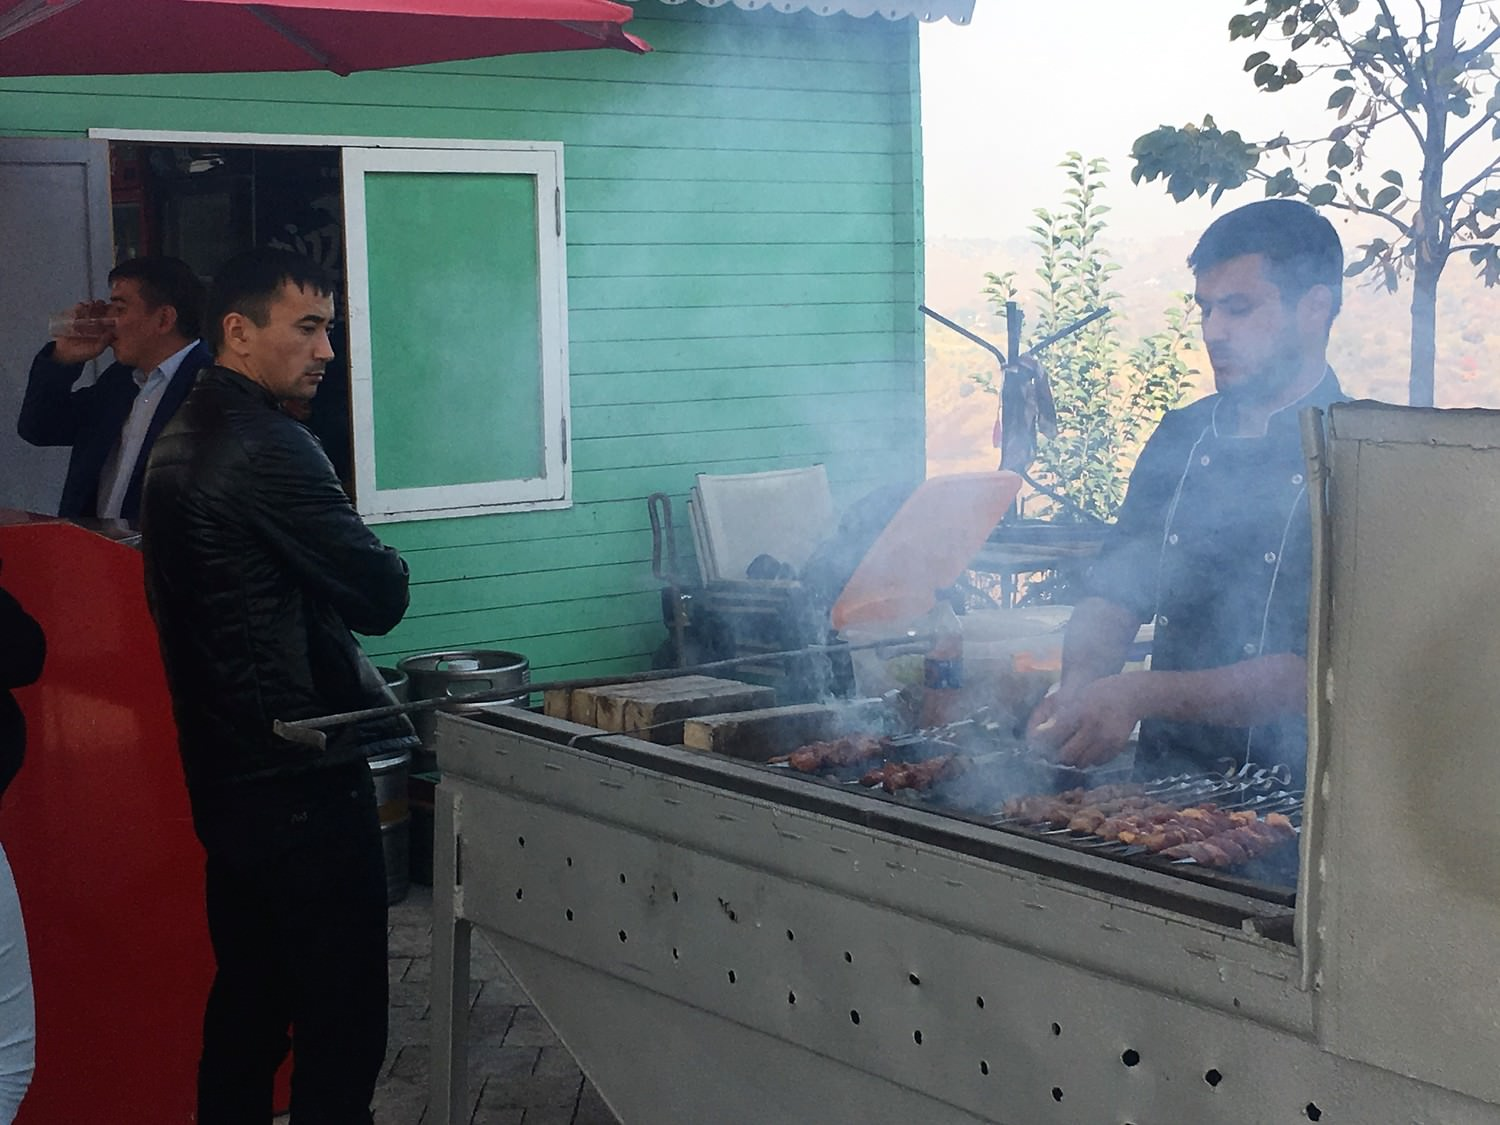 Kazakhstan Tours Group Travel To Koryo Outdoor Underground Electrical Wire Besides Focus Bbq Light Lighting Shashlik Central Asias Signature Food Being Sold On Top Of A Scenic Hill In Almaty